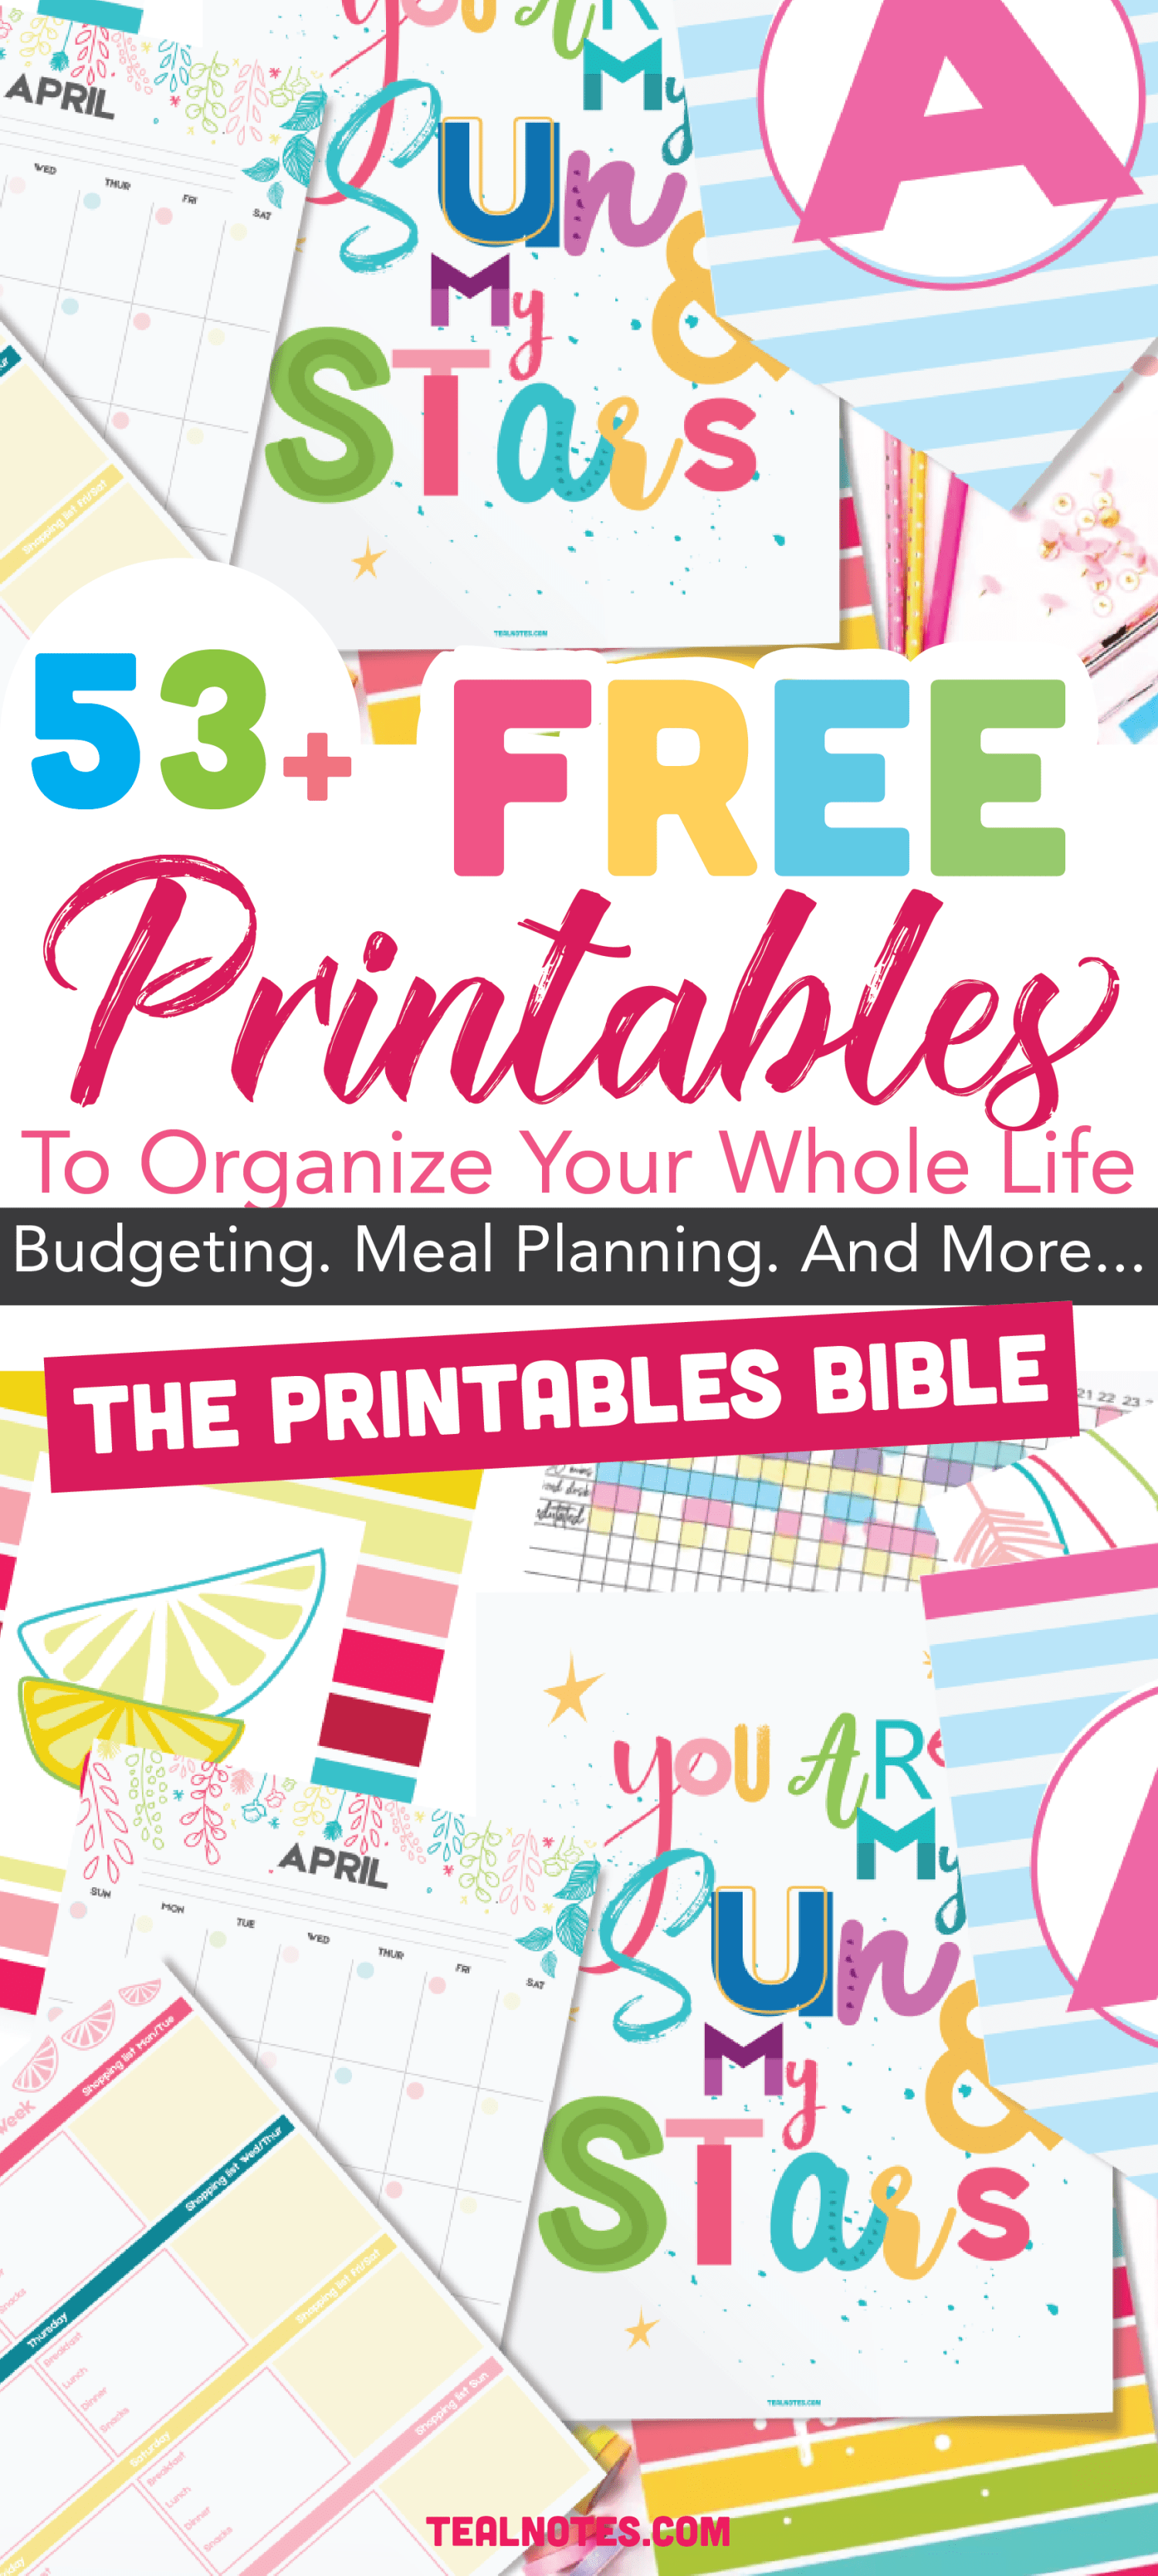 53+ Of The Most Beautiful FREE Printables To Organize Your Whole Life The Printables BIBLE is part of Life organization printables, Printables, Free planner pages, Free planner inserts, Planner printables free, Free printables - Organization printables are a great way to make sure you organize your home and life as best as possible  Here is an awesome list of cute home organization printables to make sure you stay tidy and clutter free!